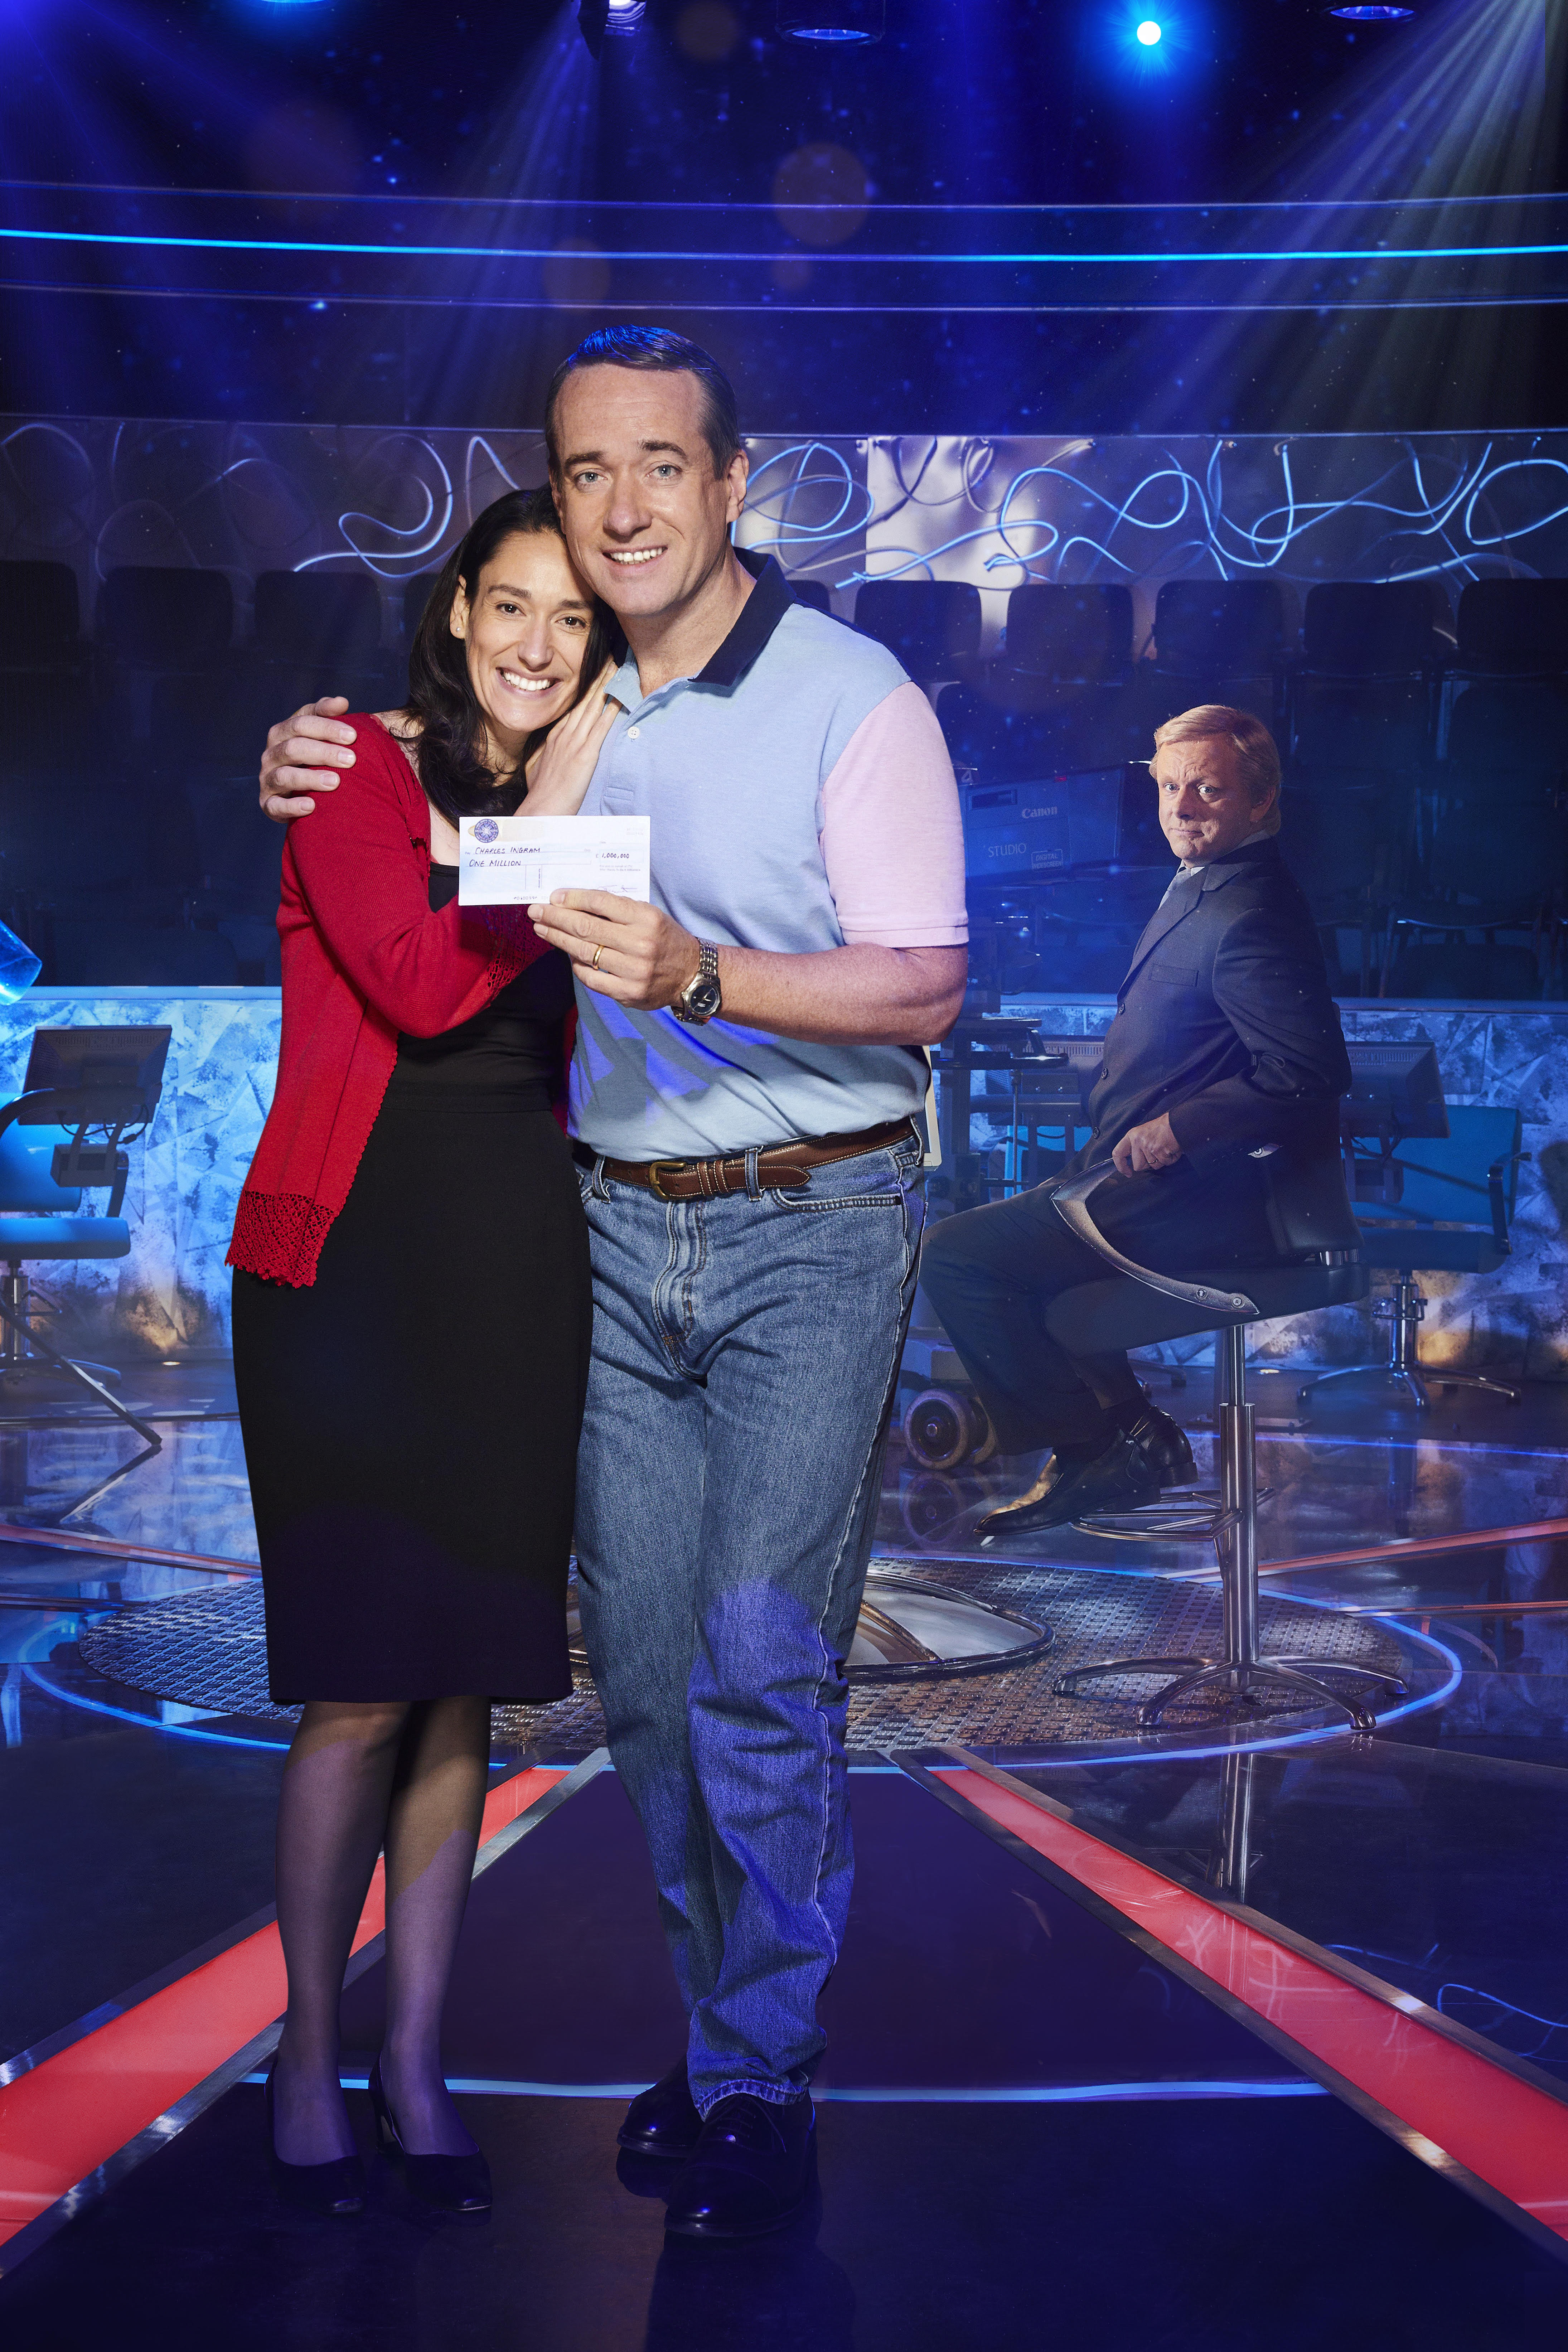 Sian Clifford and Matthew Macfayden are starring as Diana and Charles Ingram in 'Quiz'. (Leftbank Pictures/ITV)